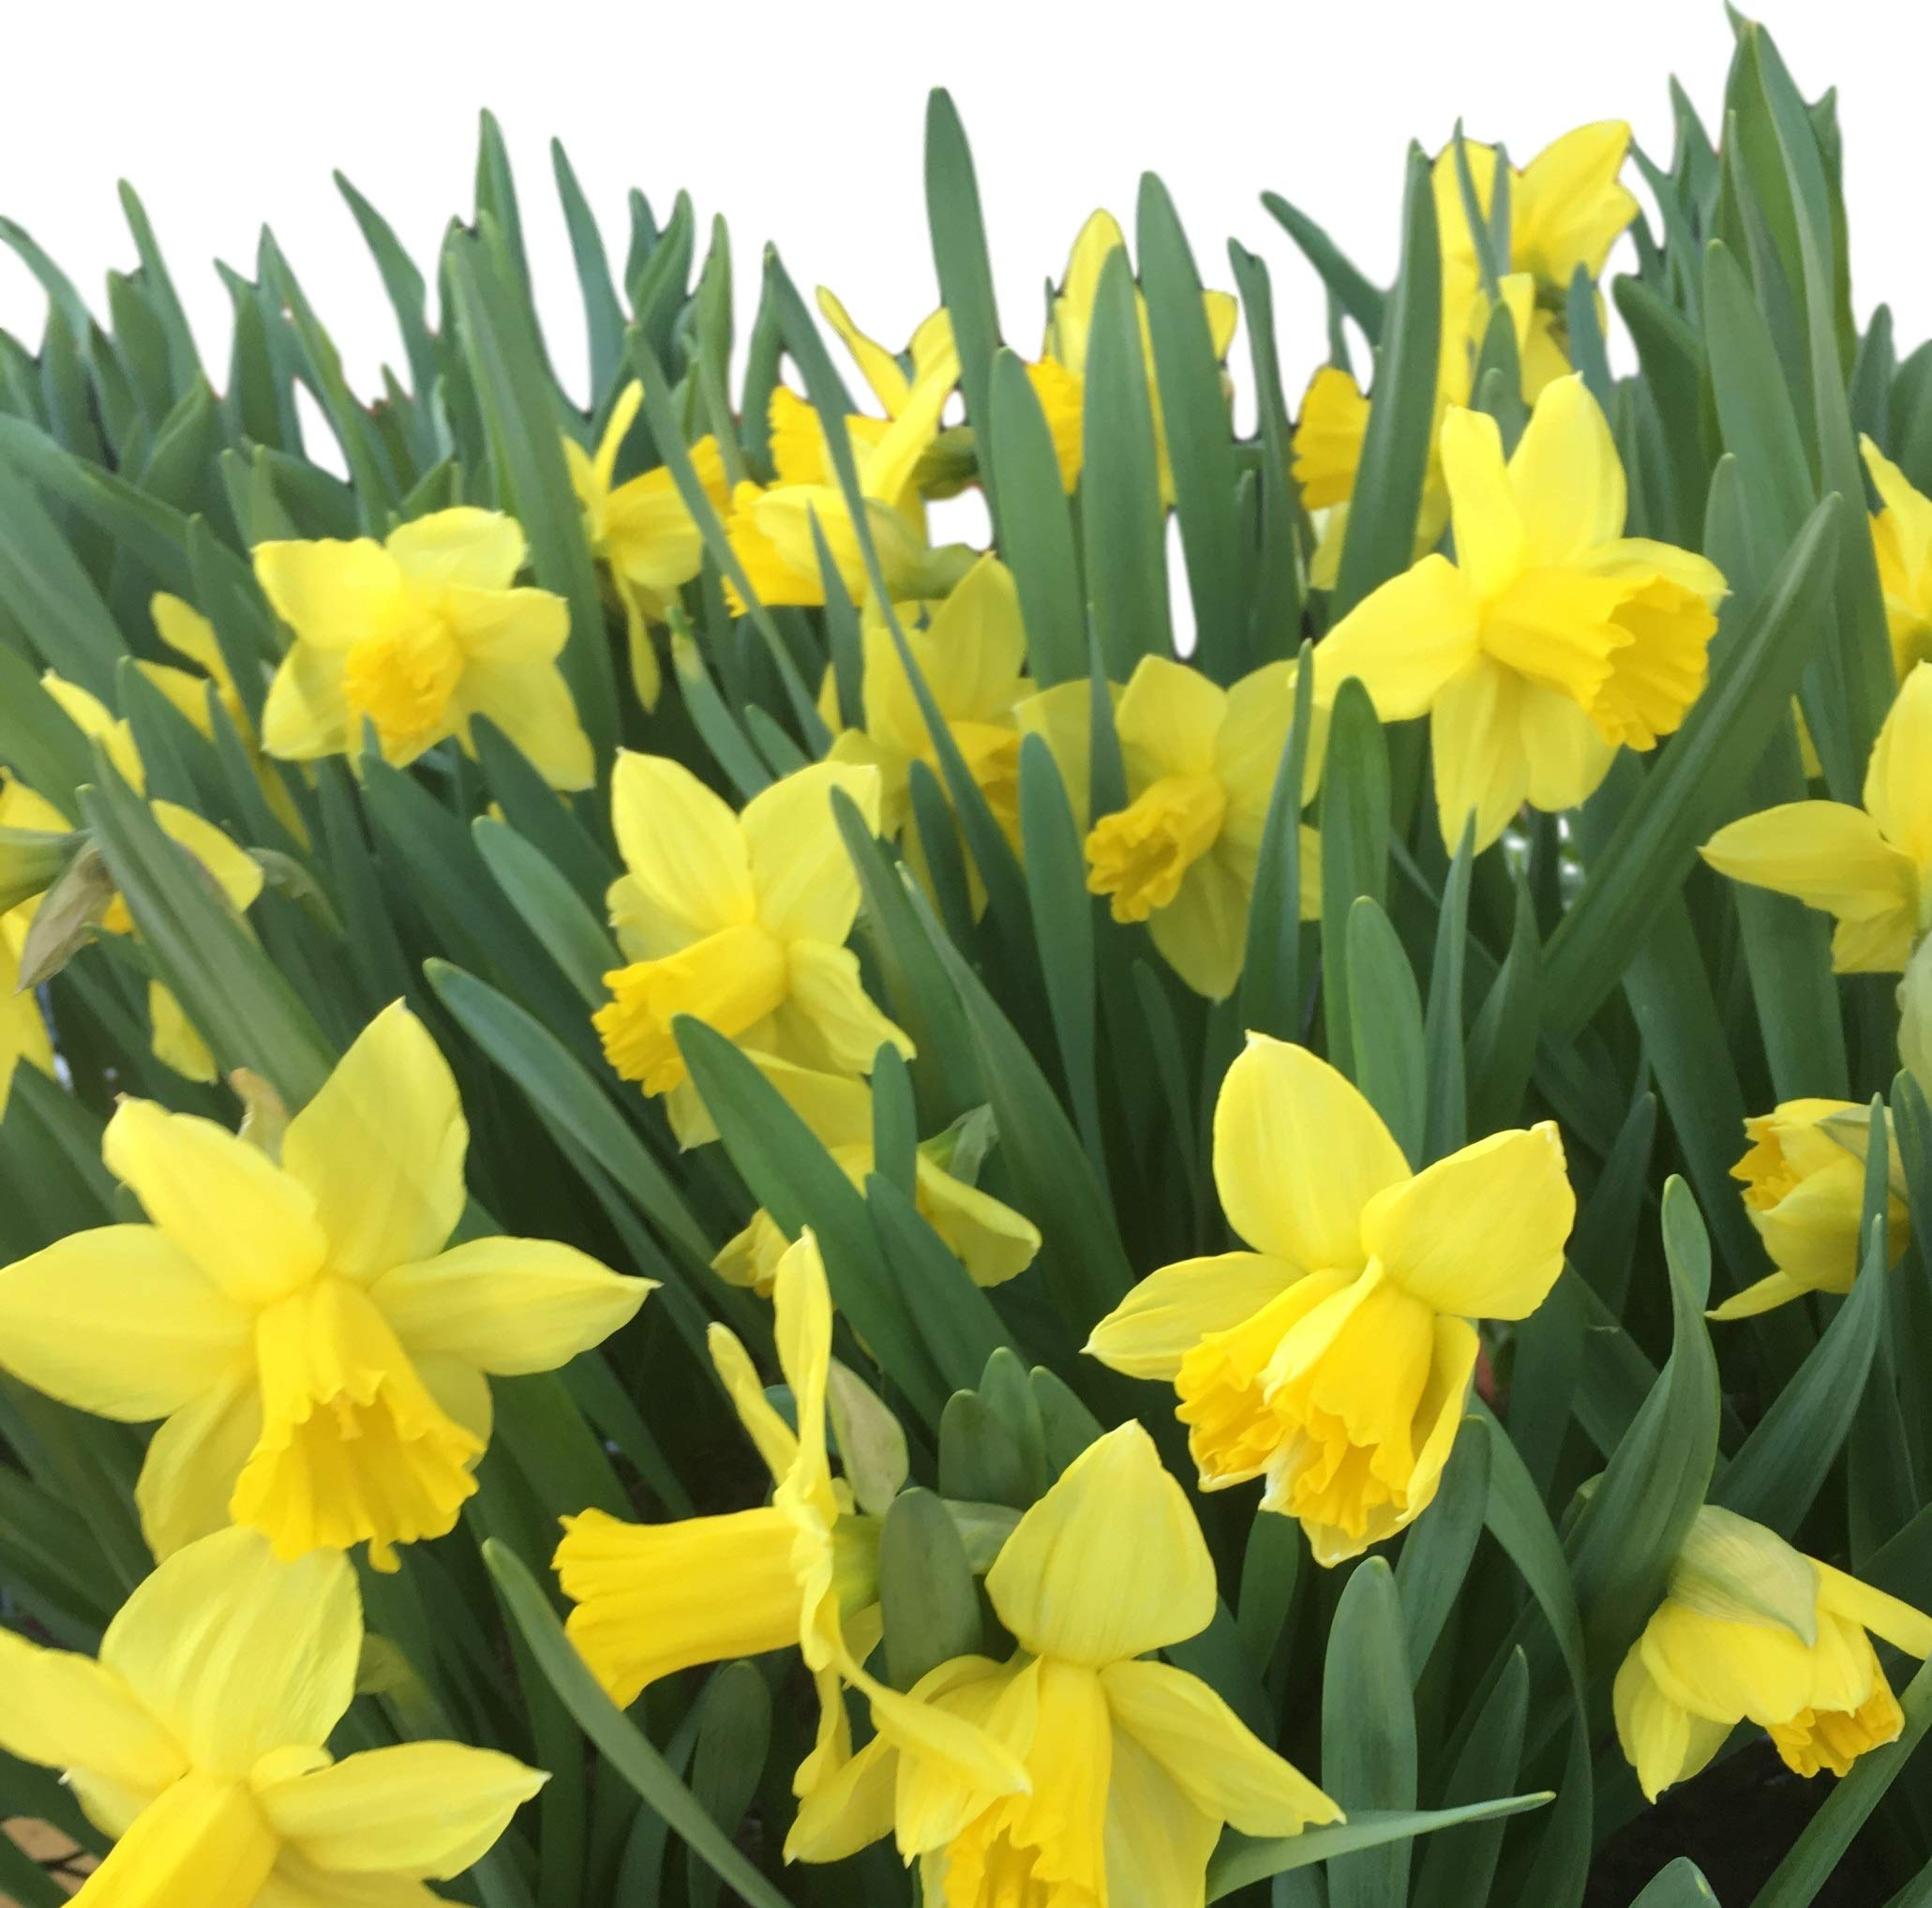 Dutch Master Daffodil 100 Bulbs -Deer & Rodent Resistant - 12/14 cm Bulbs by Daylily Nursery